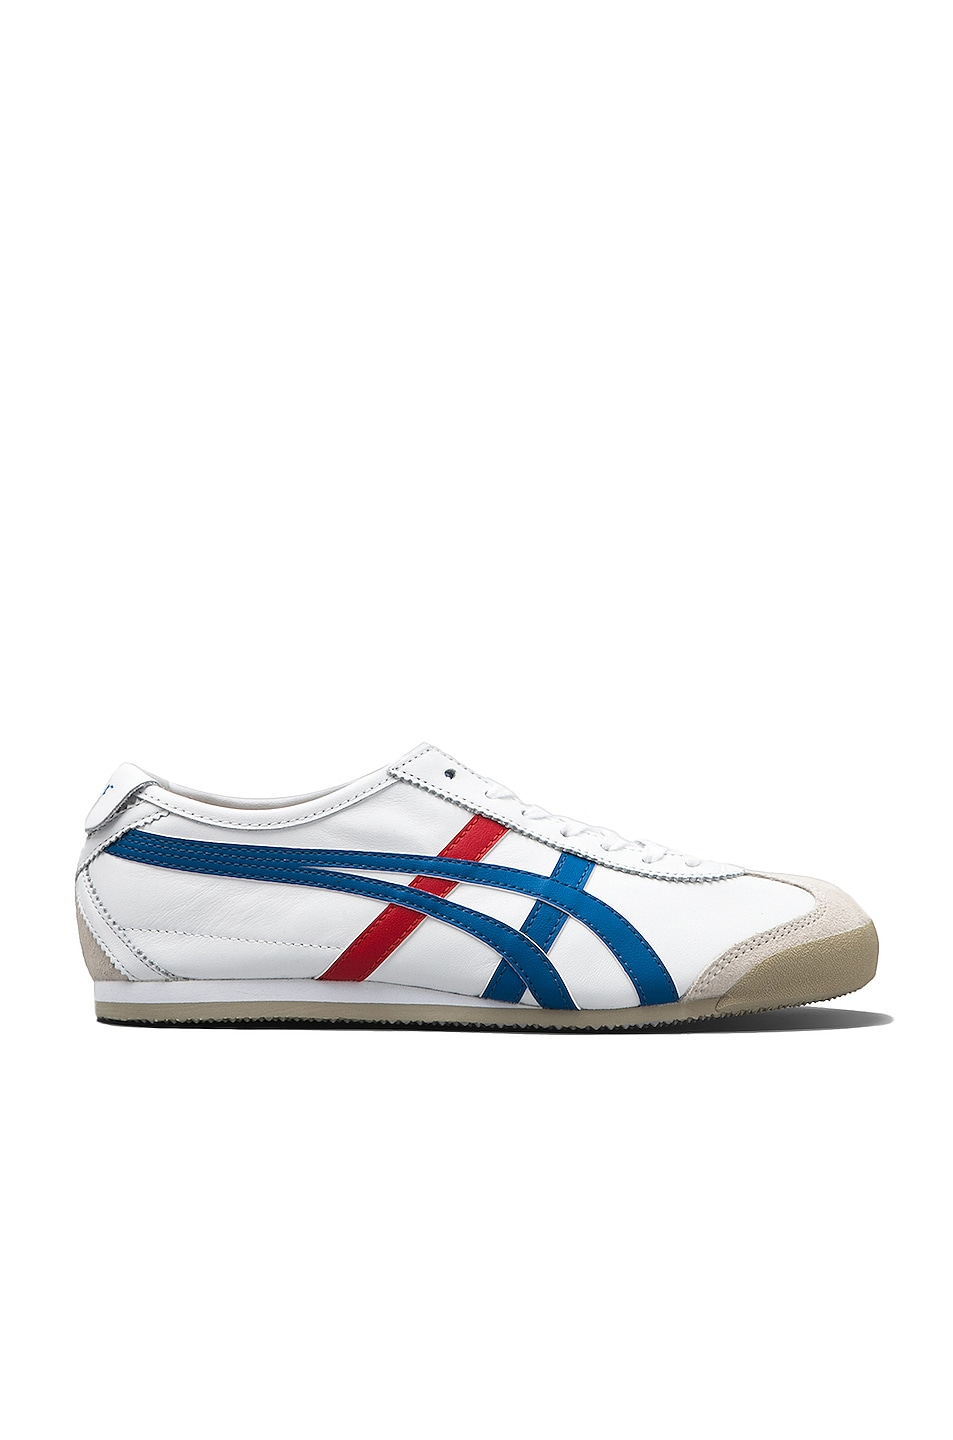 Image 1 of Onitsuka Tiger Mexico 66 in White & Blue